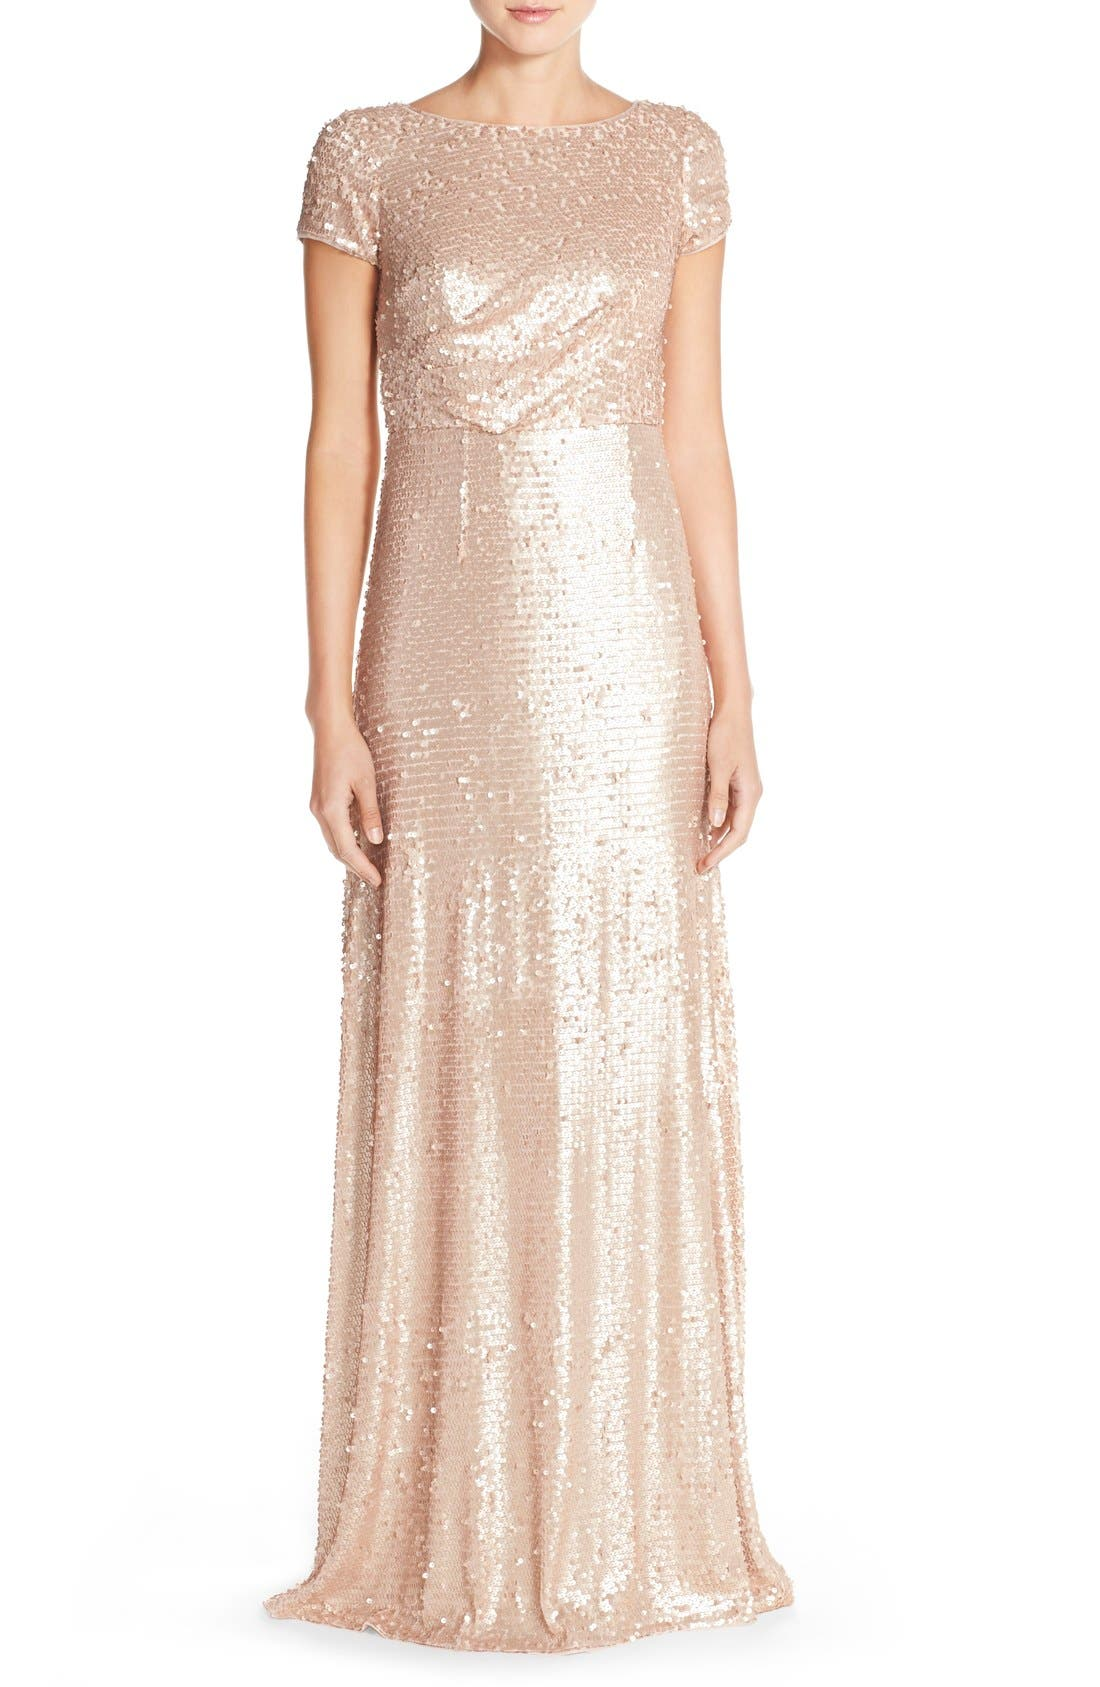 Alternate Image 1 Selected - Adrianna Papell Sequin Mesh A-Line Gown